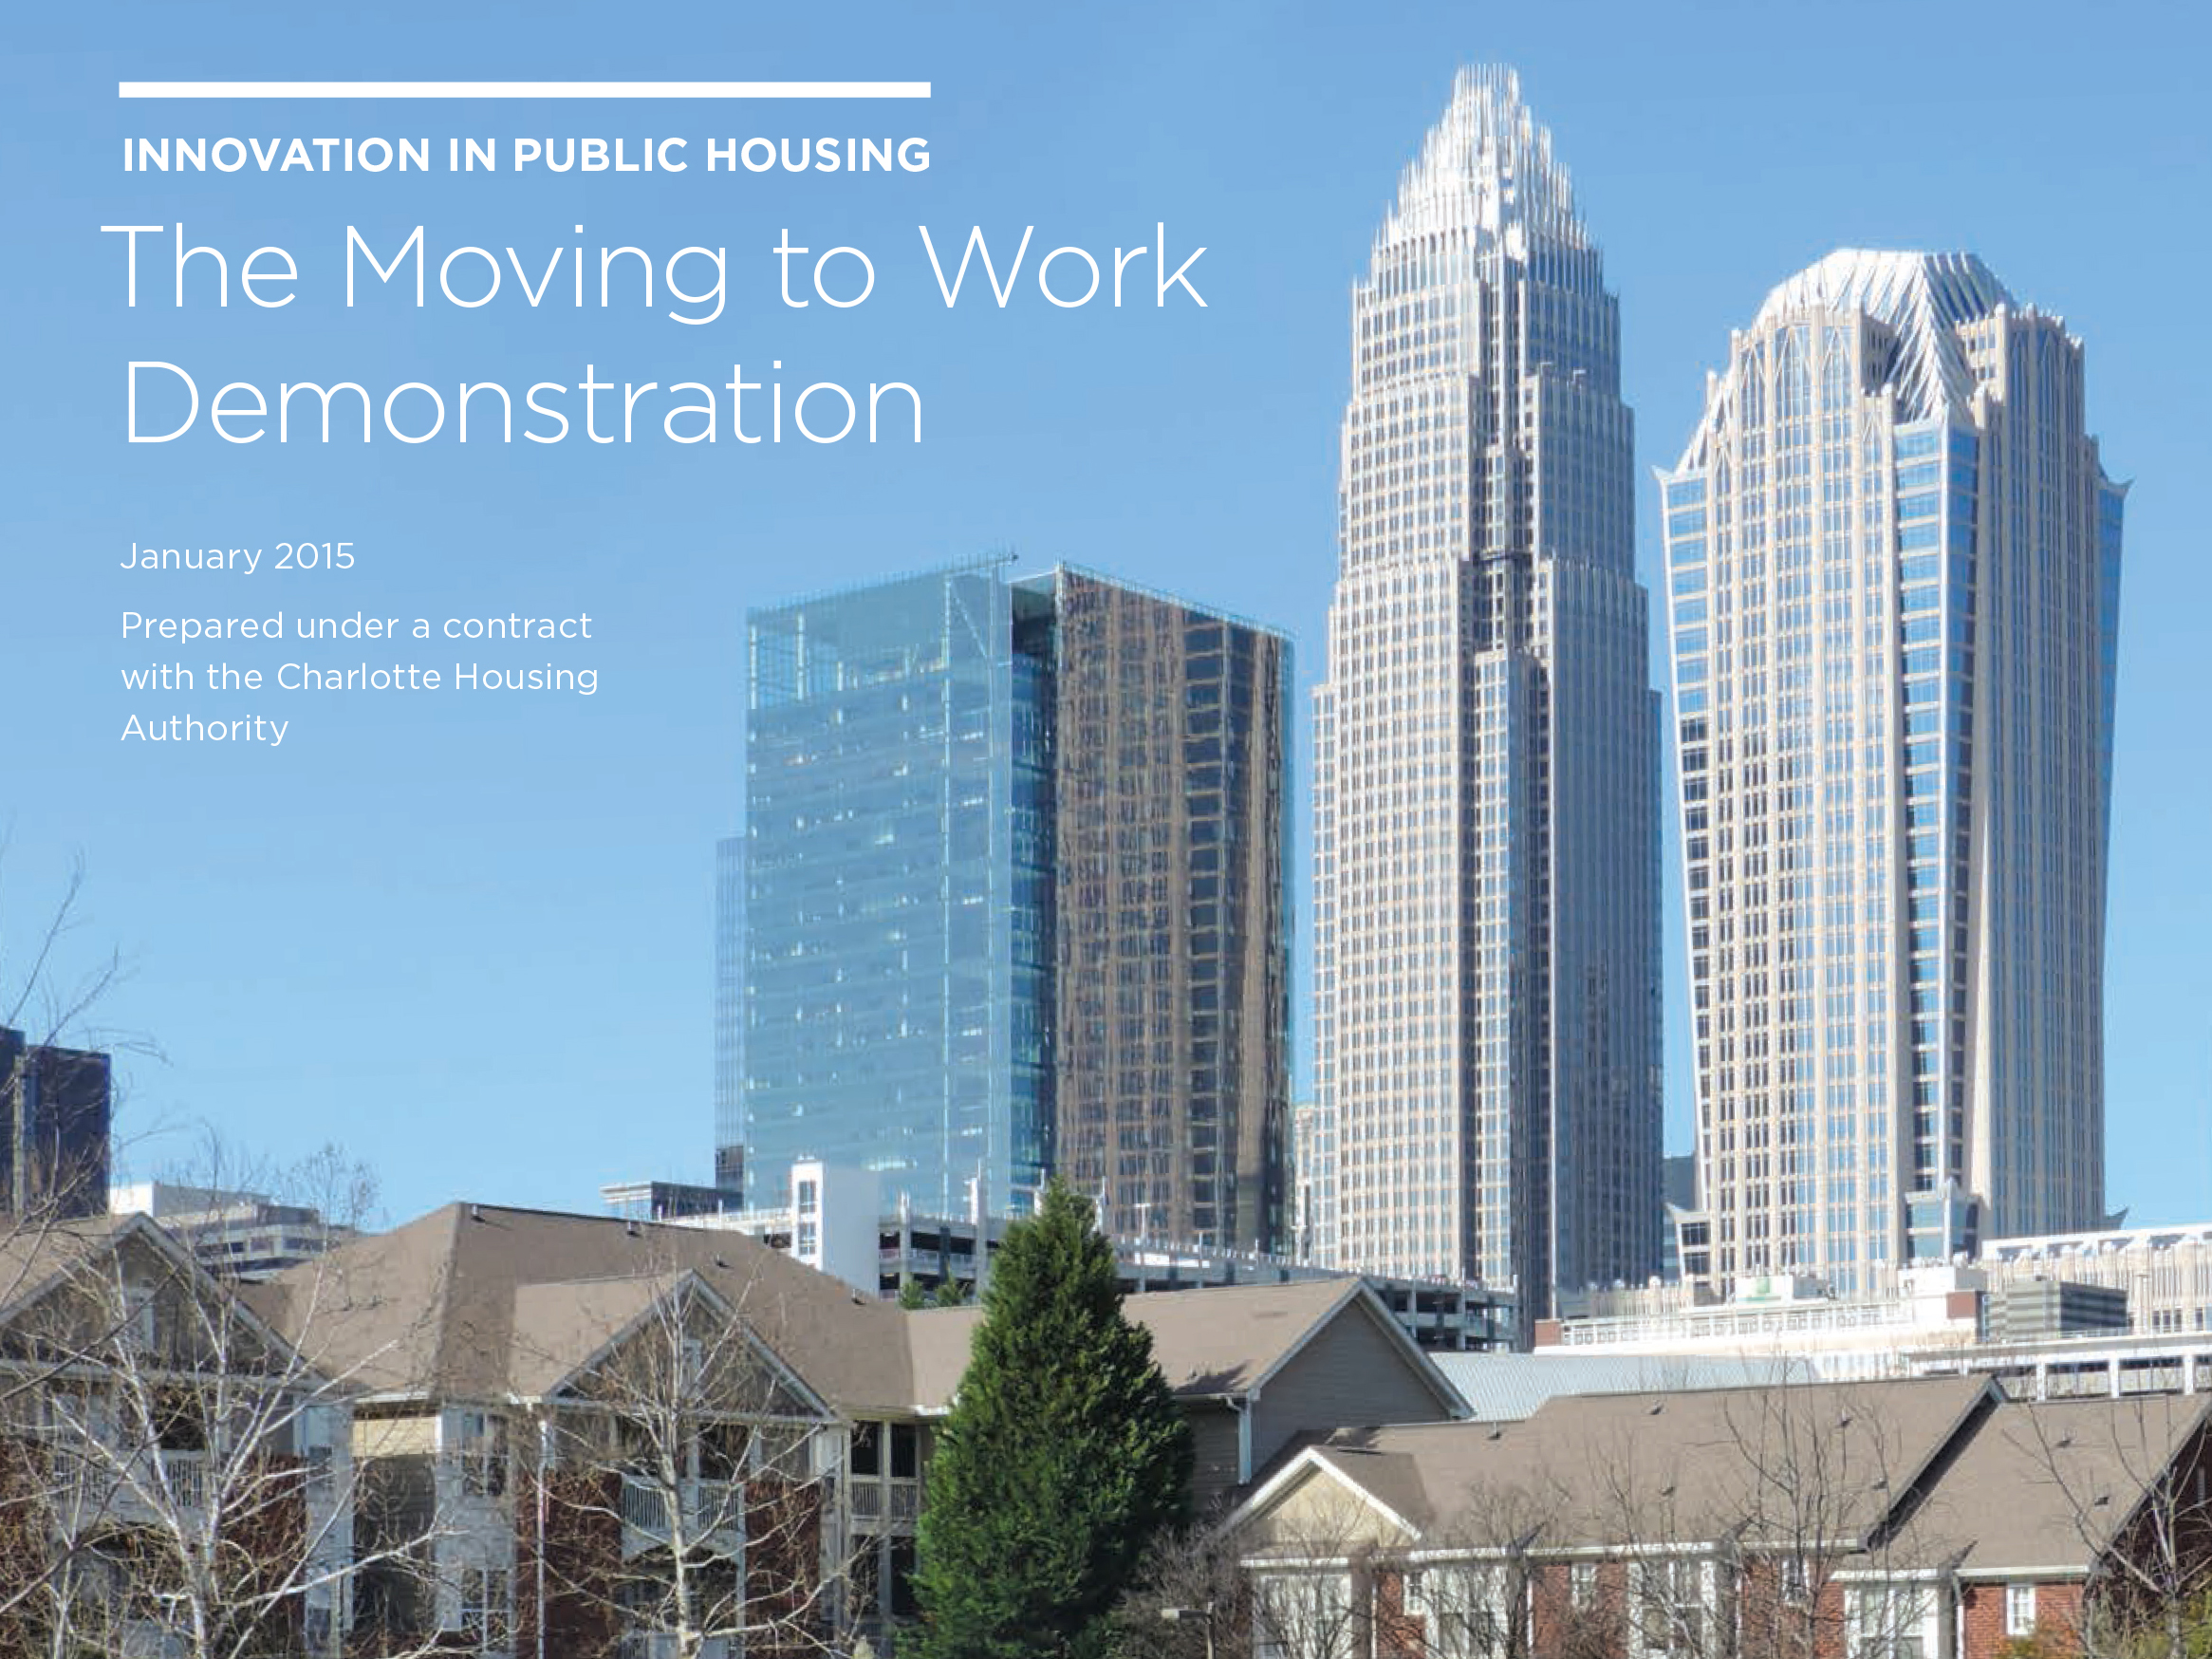 Innovation in Public Housing: The Moving to Work Demonstration